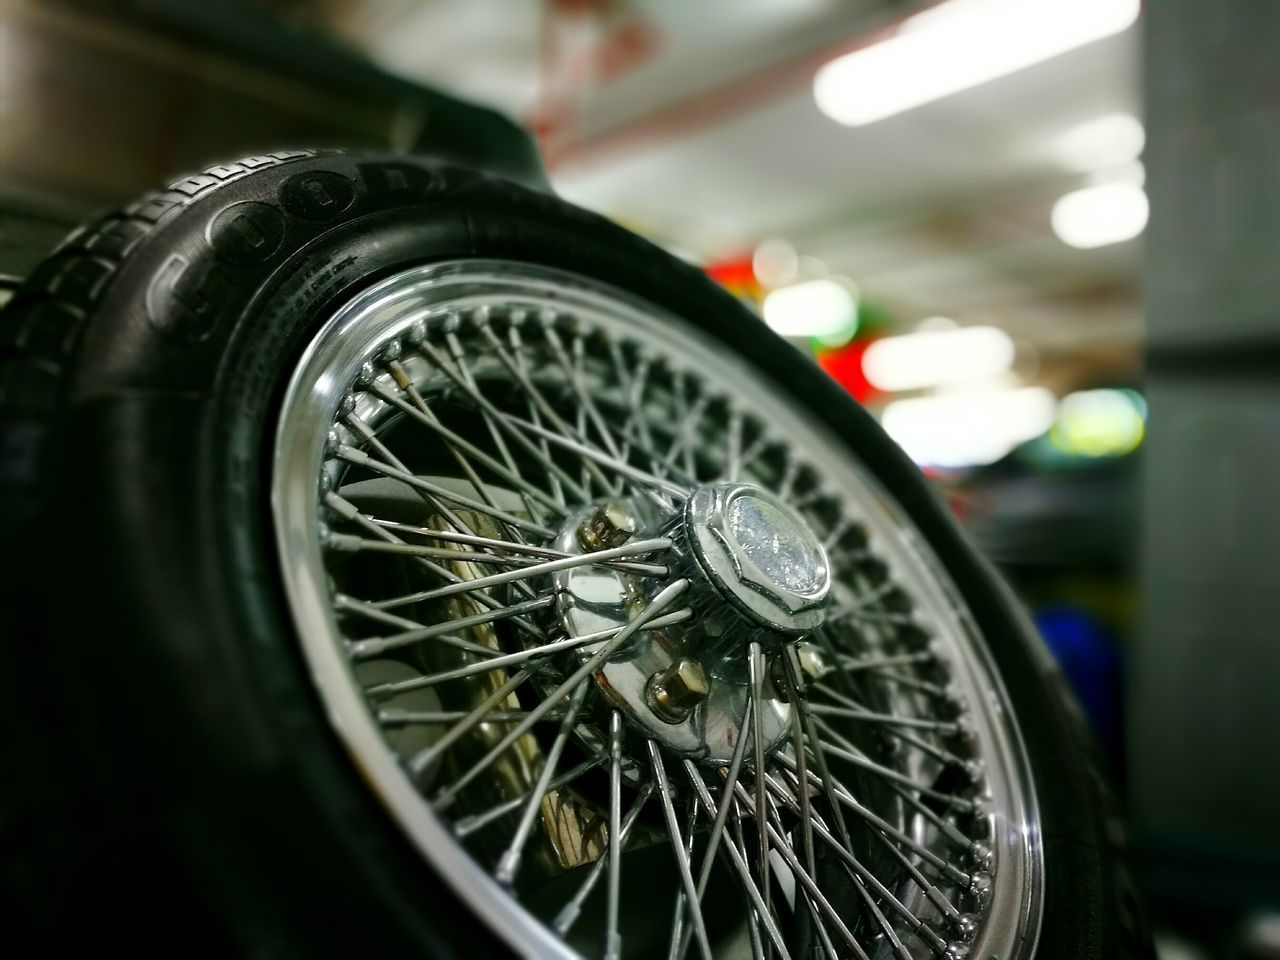 transportation, mode of transport, land vehicle, wheel, close-up, metal, no people, focus on foreground, spoke, vehicle part, car, indoors, gear, day, tire, gauge, speedometer